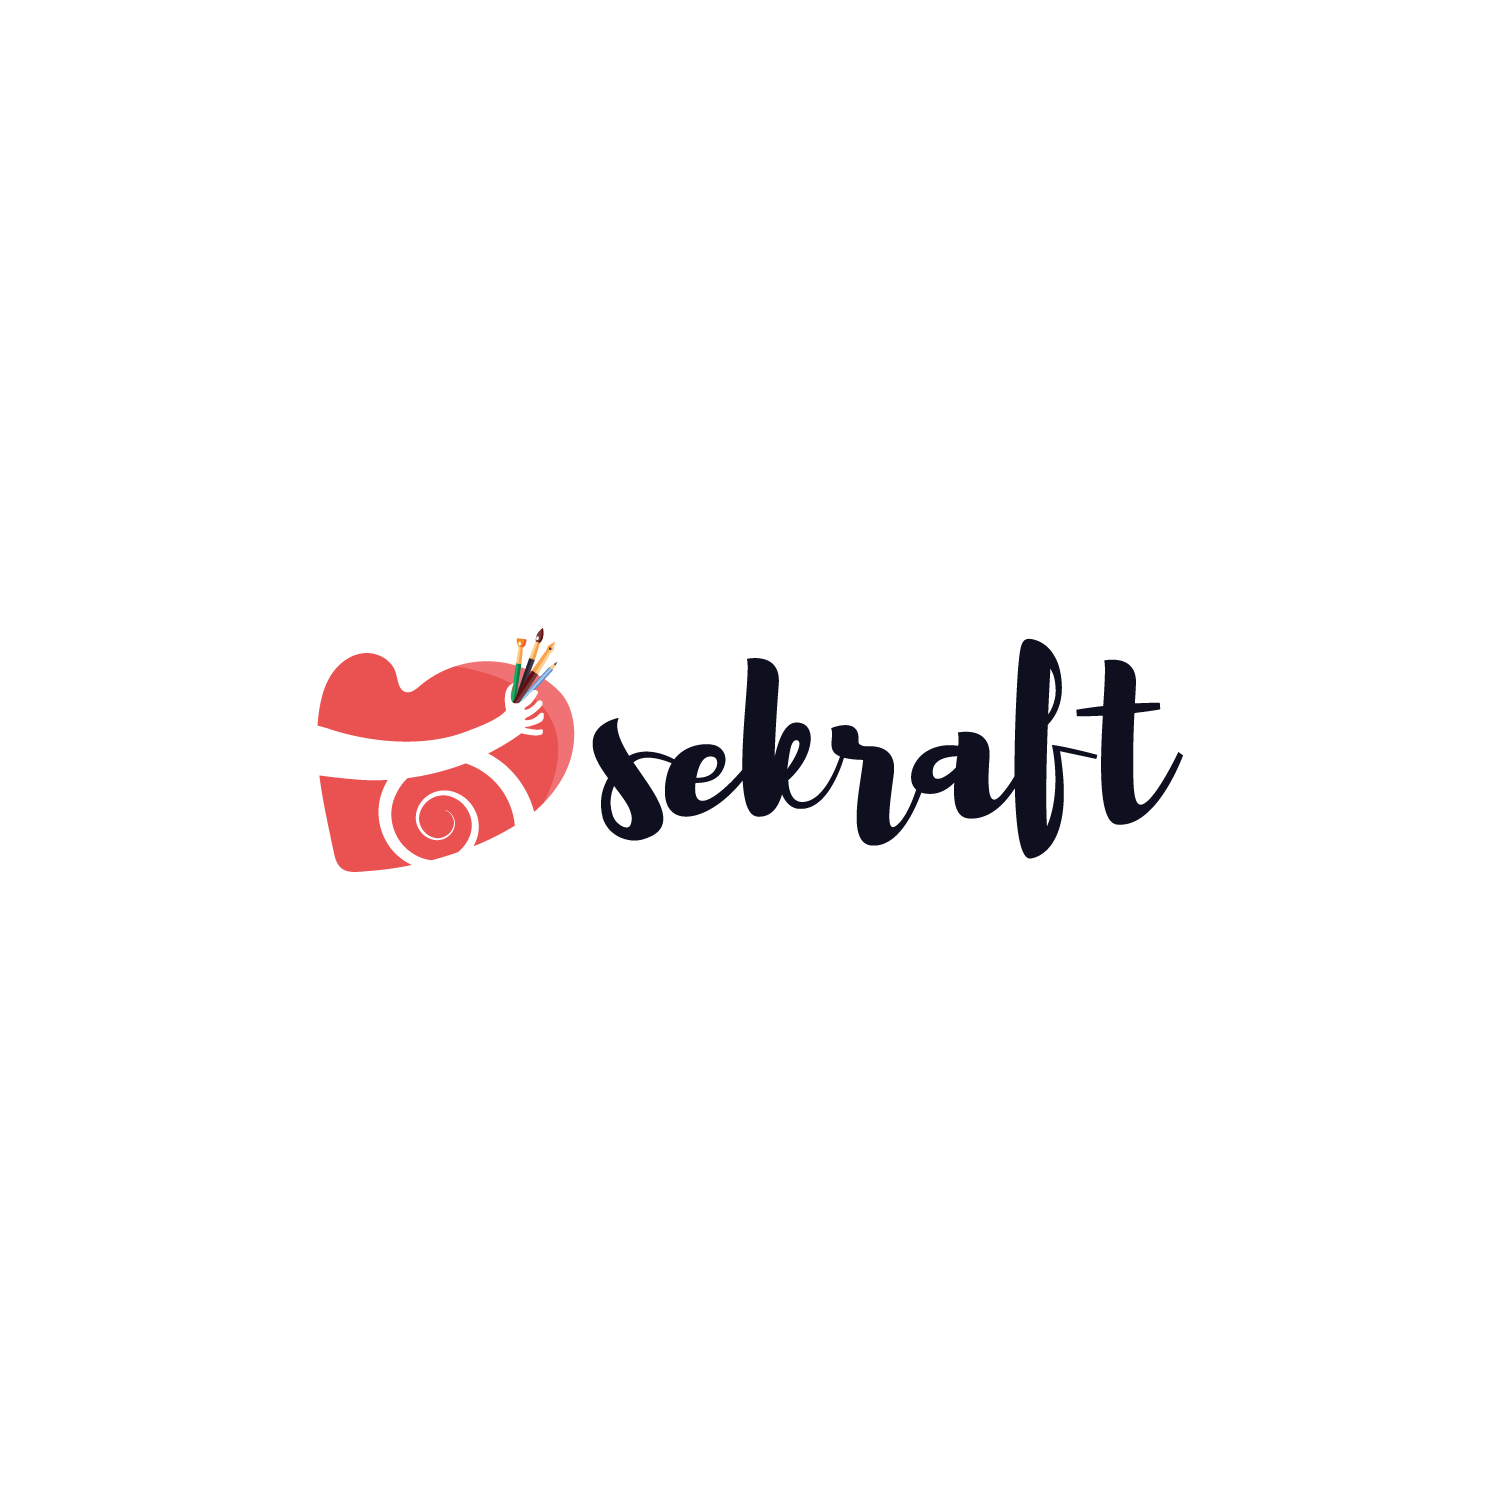 Dilsekraft - Our works